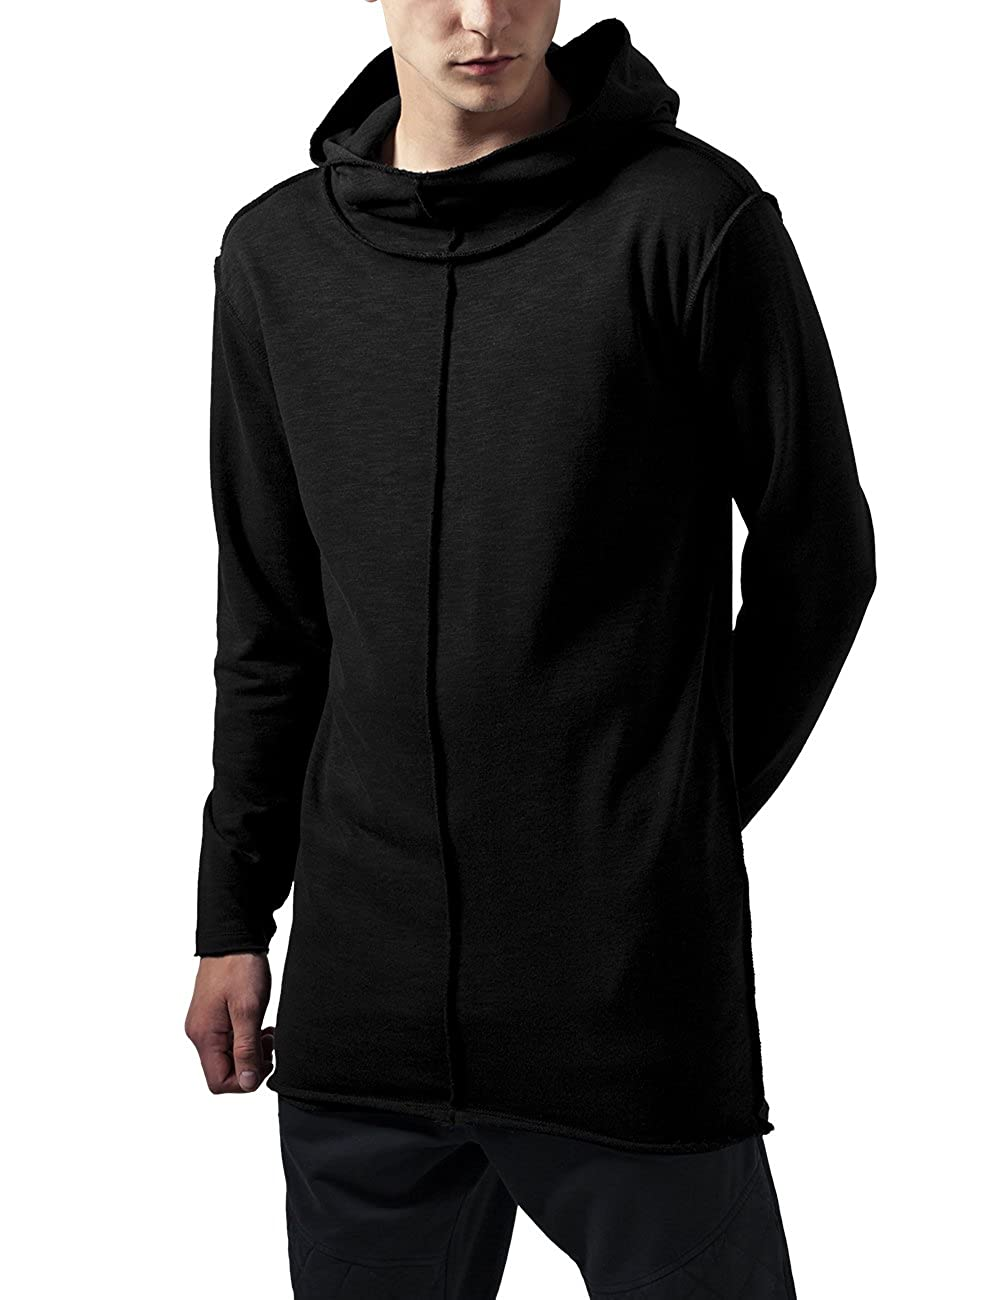 Urban Classic Men's Long Slub Terry Open Edge Hoody Sports